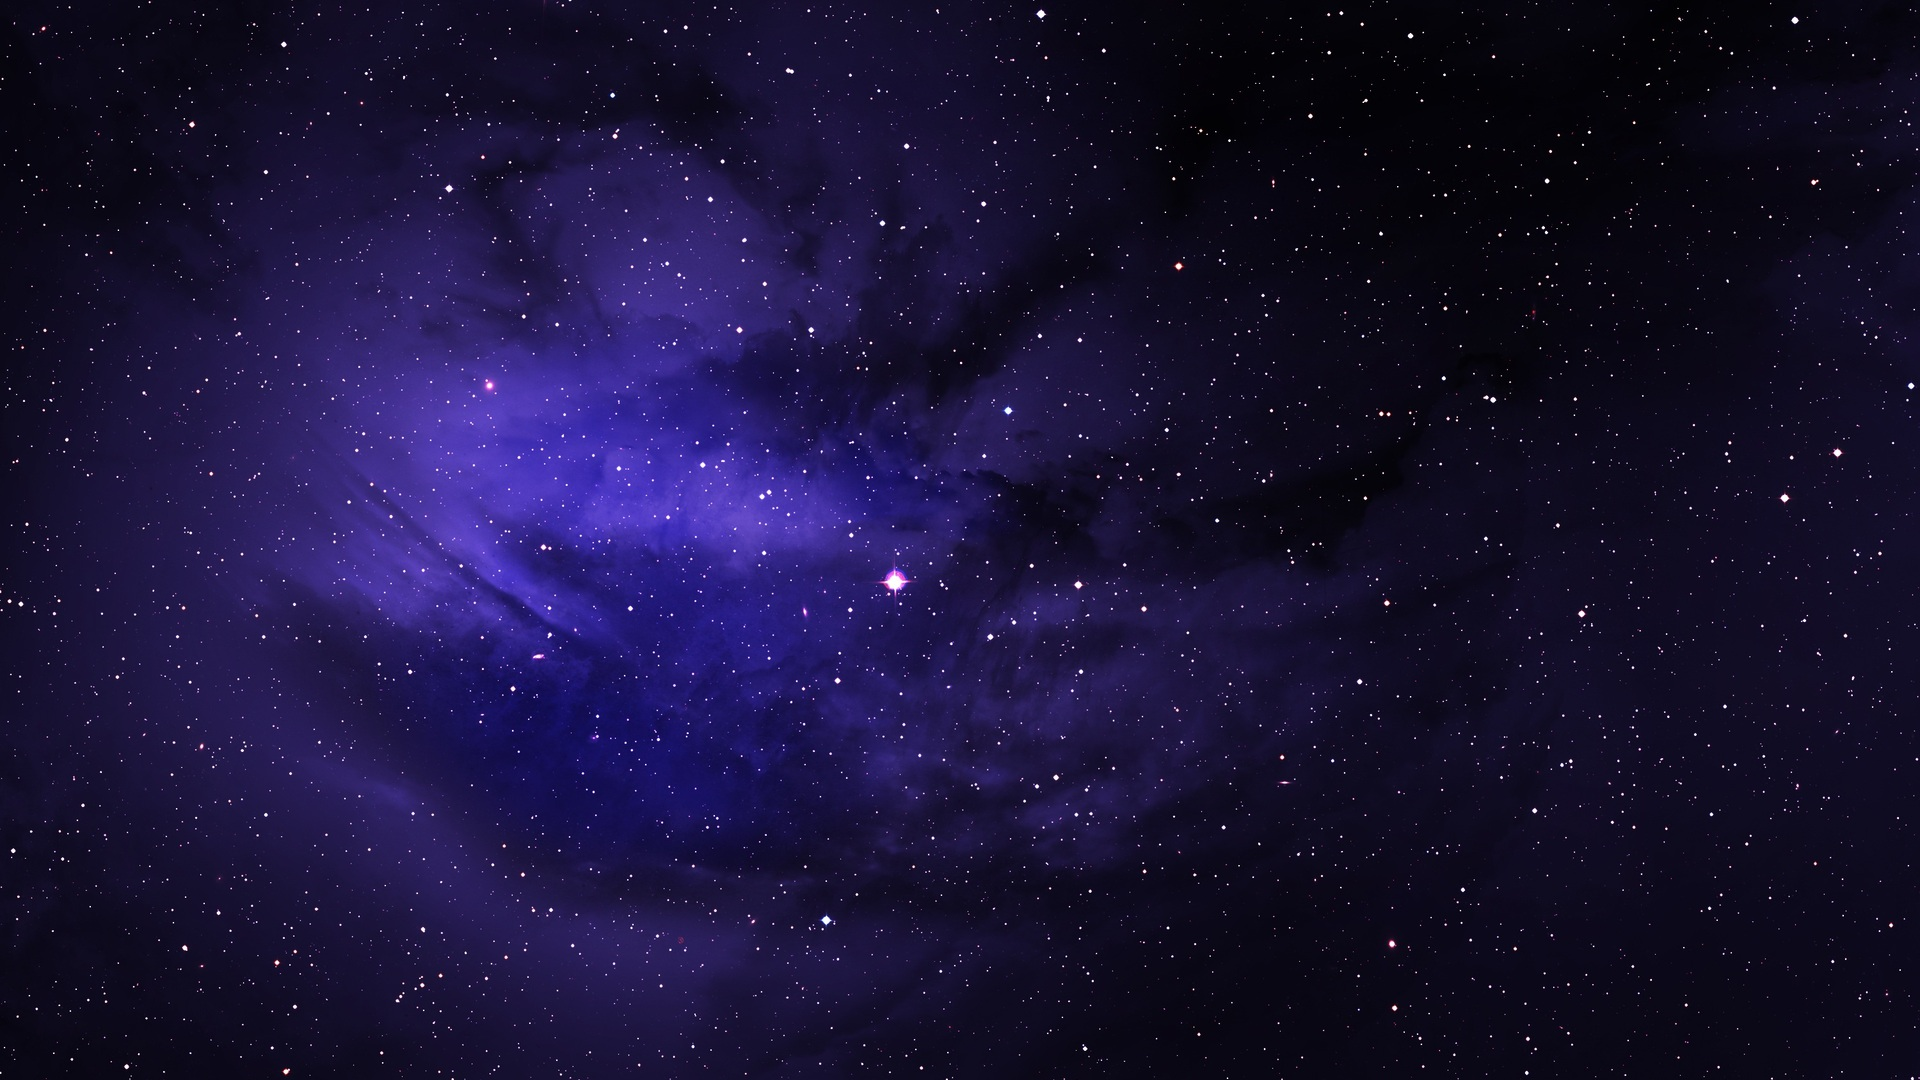 1920x1080 Space Stars Purple Sky Laptop Full Hd 1080p Hd 4k